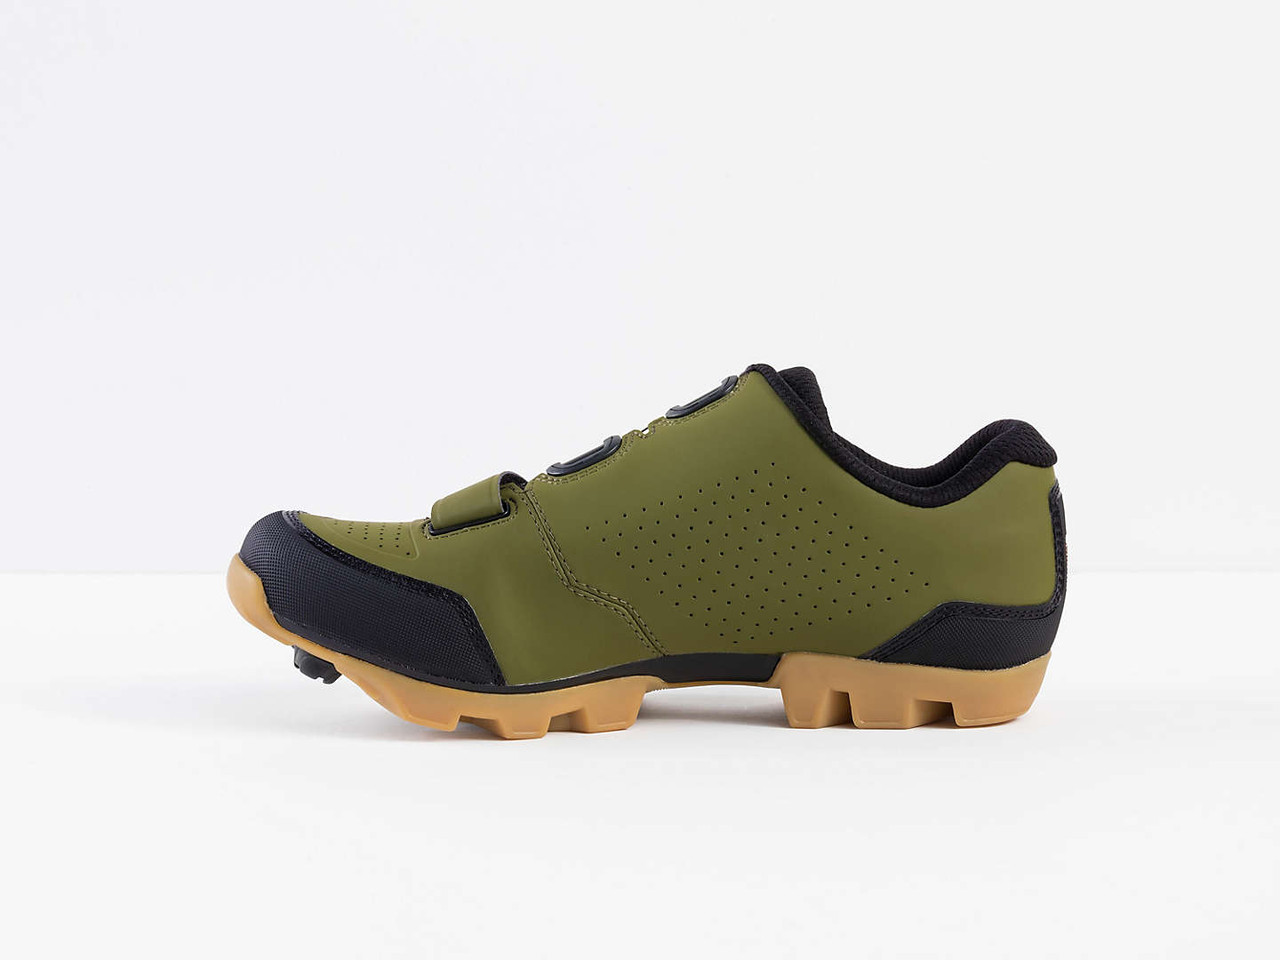 Bontrager Foray Mountain Shoe - Olive Grey